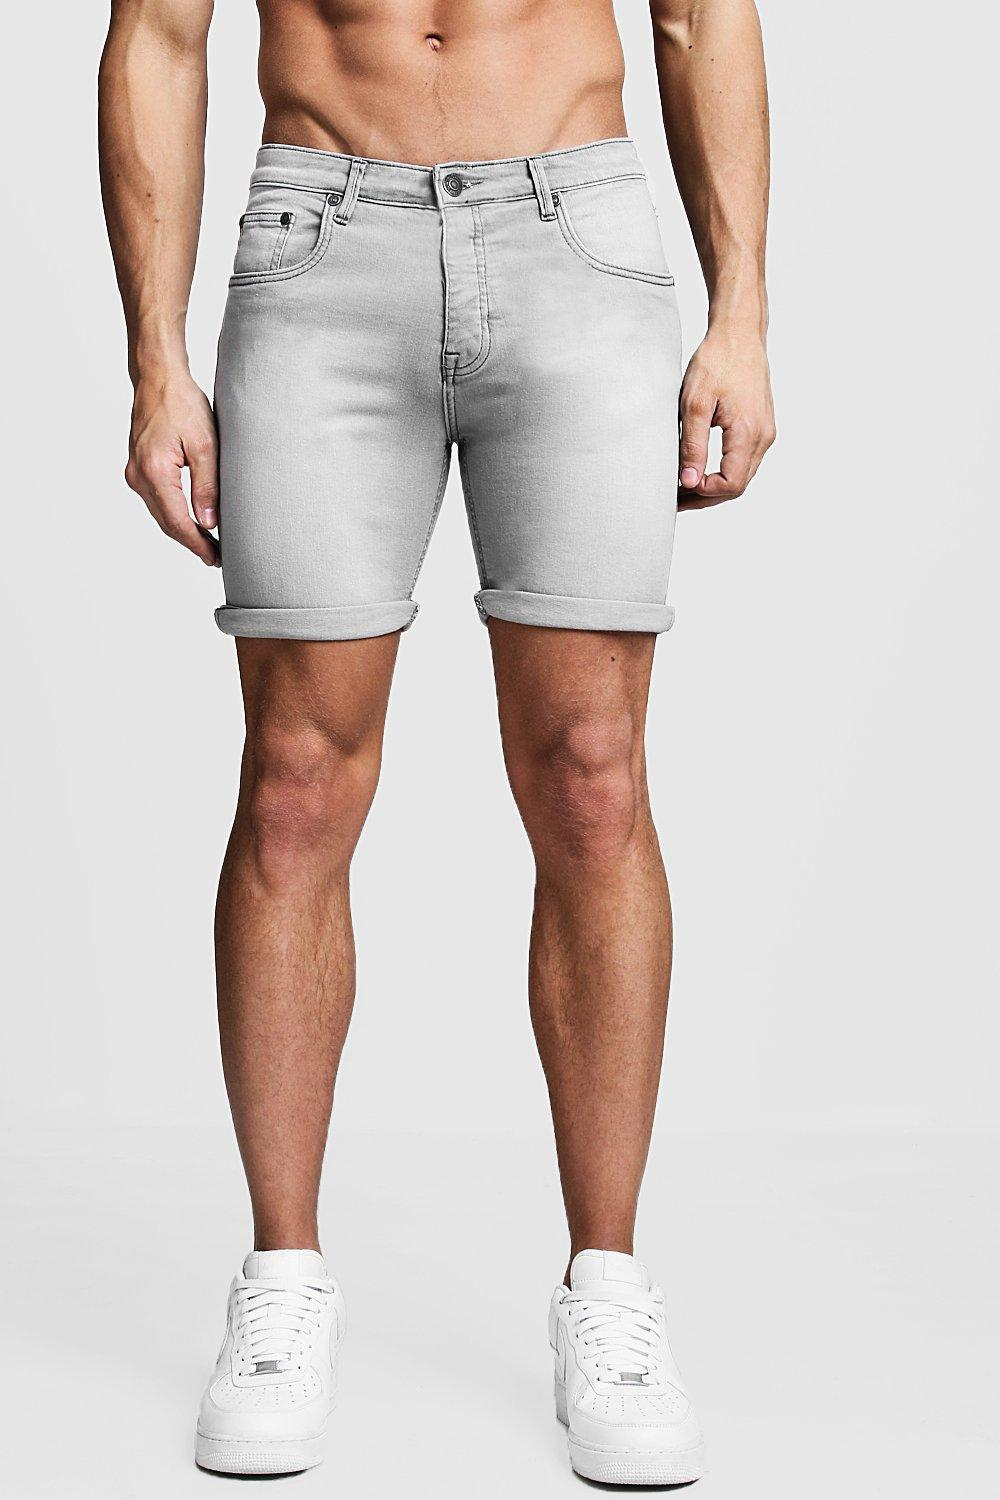 5f8d45f55fce16 BoohooMAN Graue Stretch Skinny-fit Jeansshorts in Gray for Men - Lyst